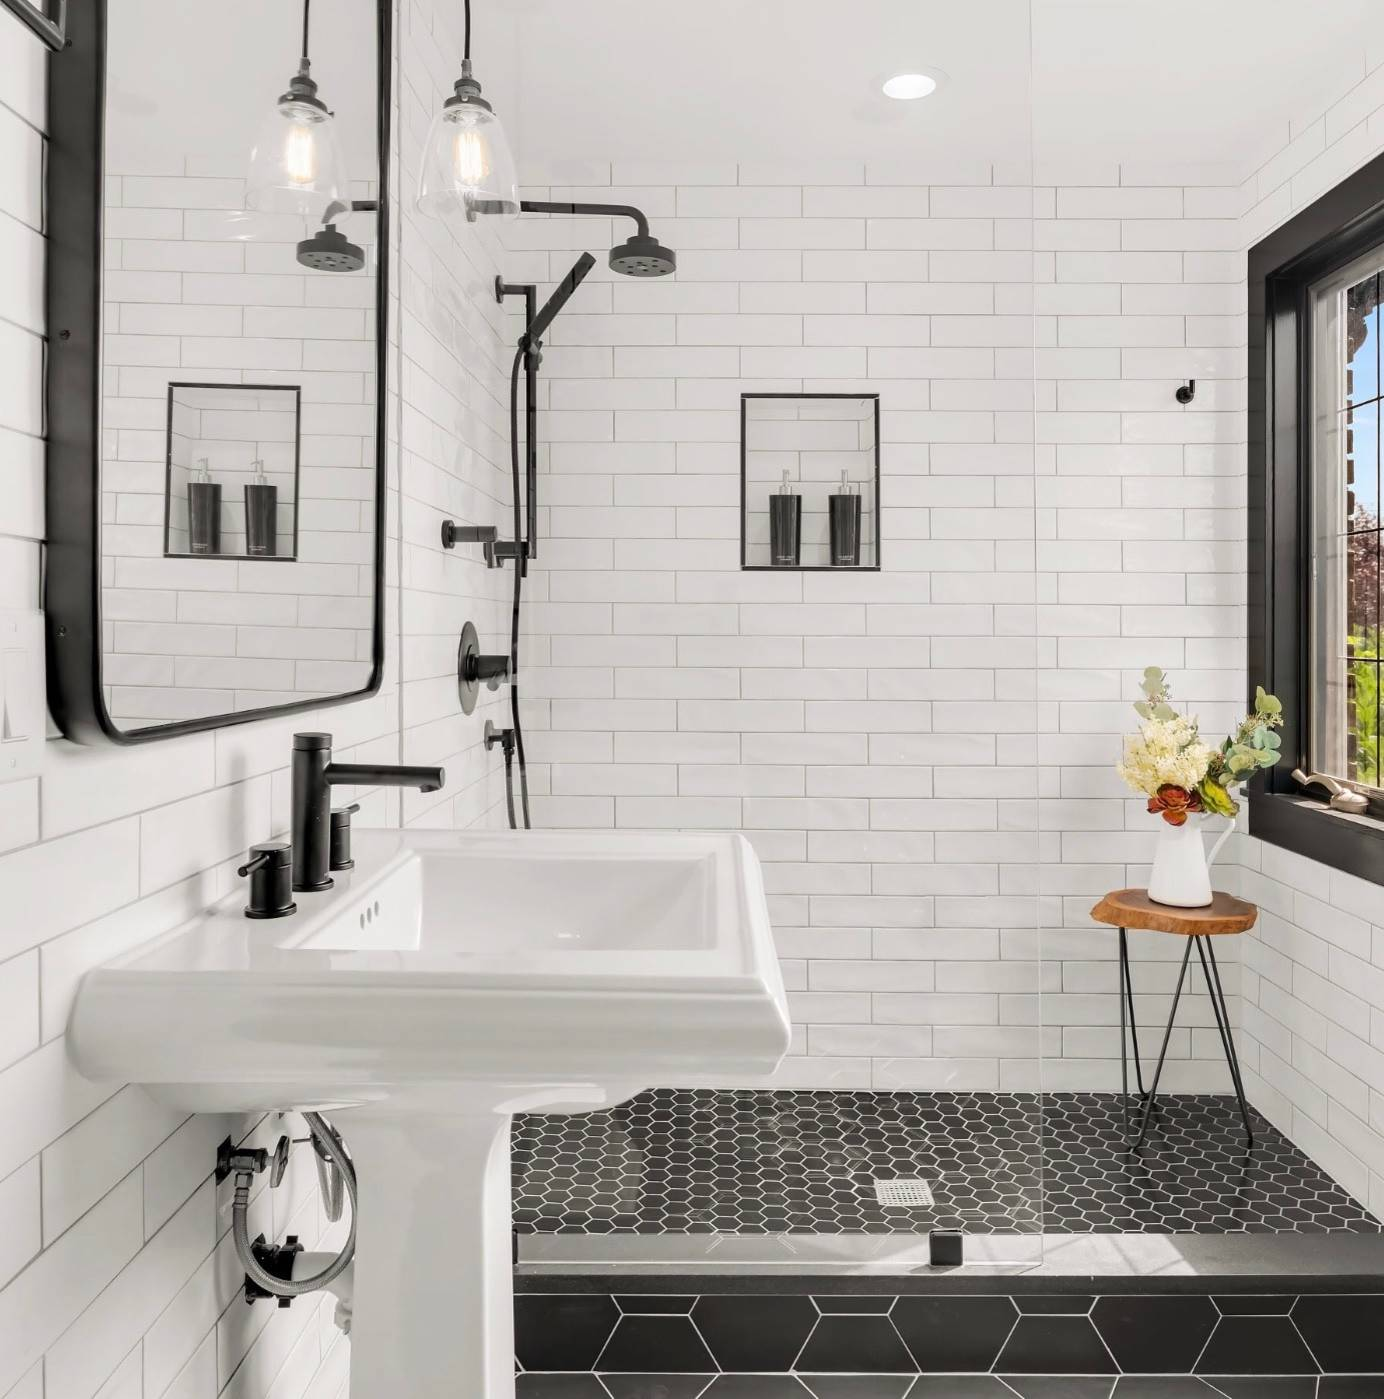 75 Beautiful Subway Tile Bathroom Pictures Ideas November 2020 Houzz